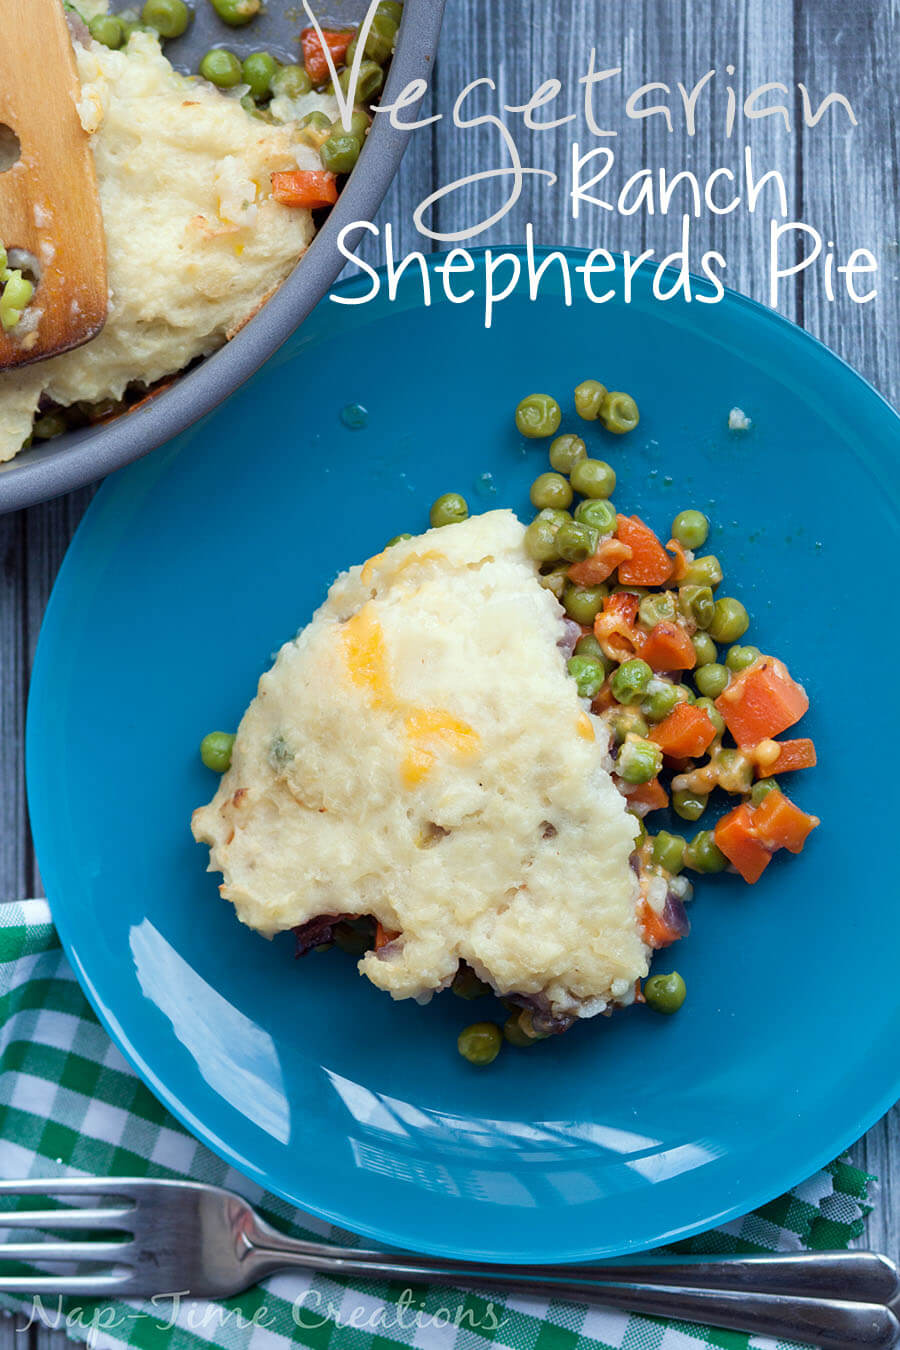 vegetarian ranch shepherds pie from Nap-Time Creations